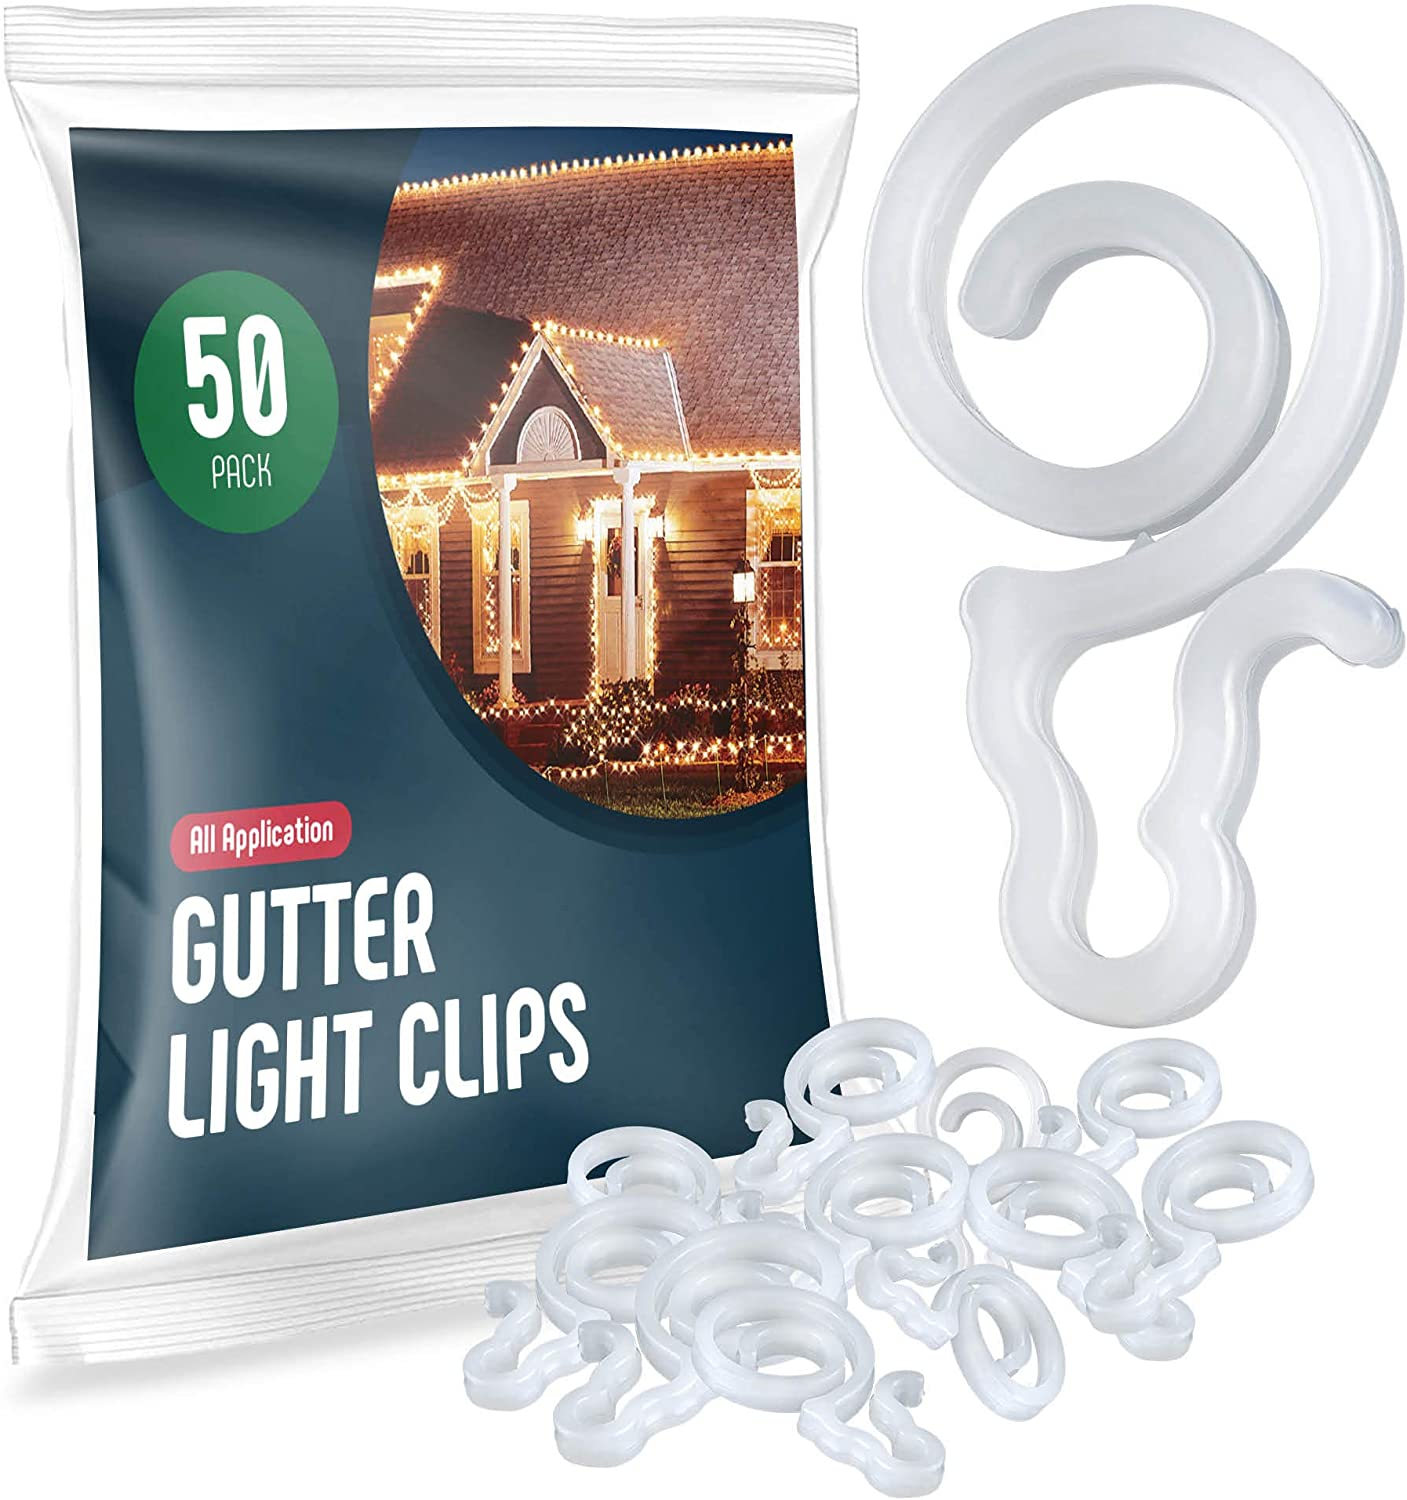 Holiday Light Clips [Set of 50] Gutter Light Clips, Hang By Cord All Type Outdoor Lights C5, C6, C7, C9, Mini, Icicle, Rope Lights. Christmas Light Clips Outdoor - No Tools Required - USA Made